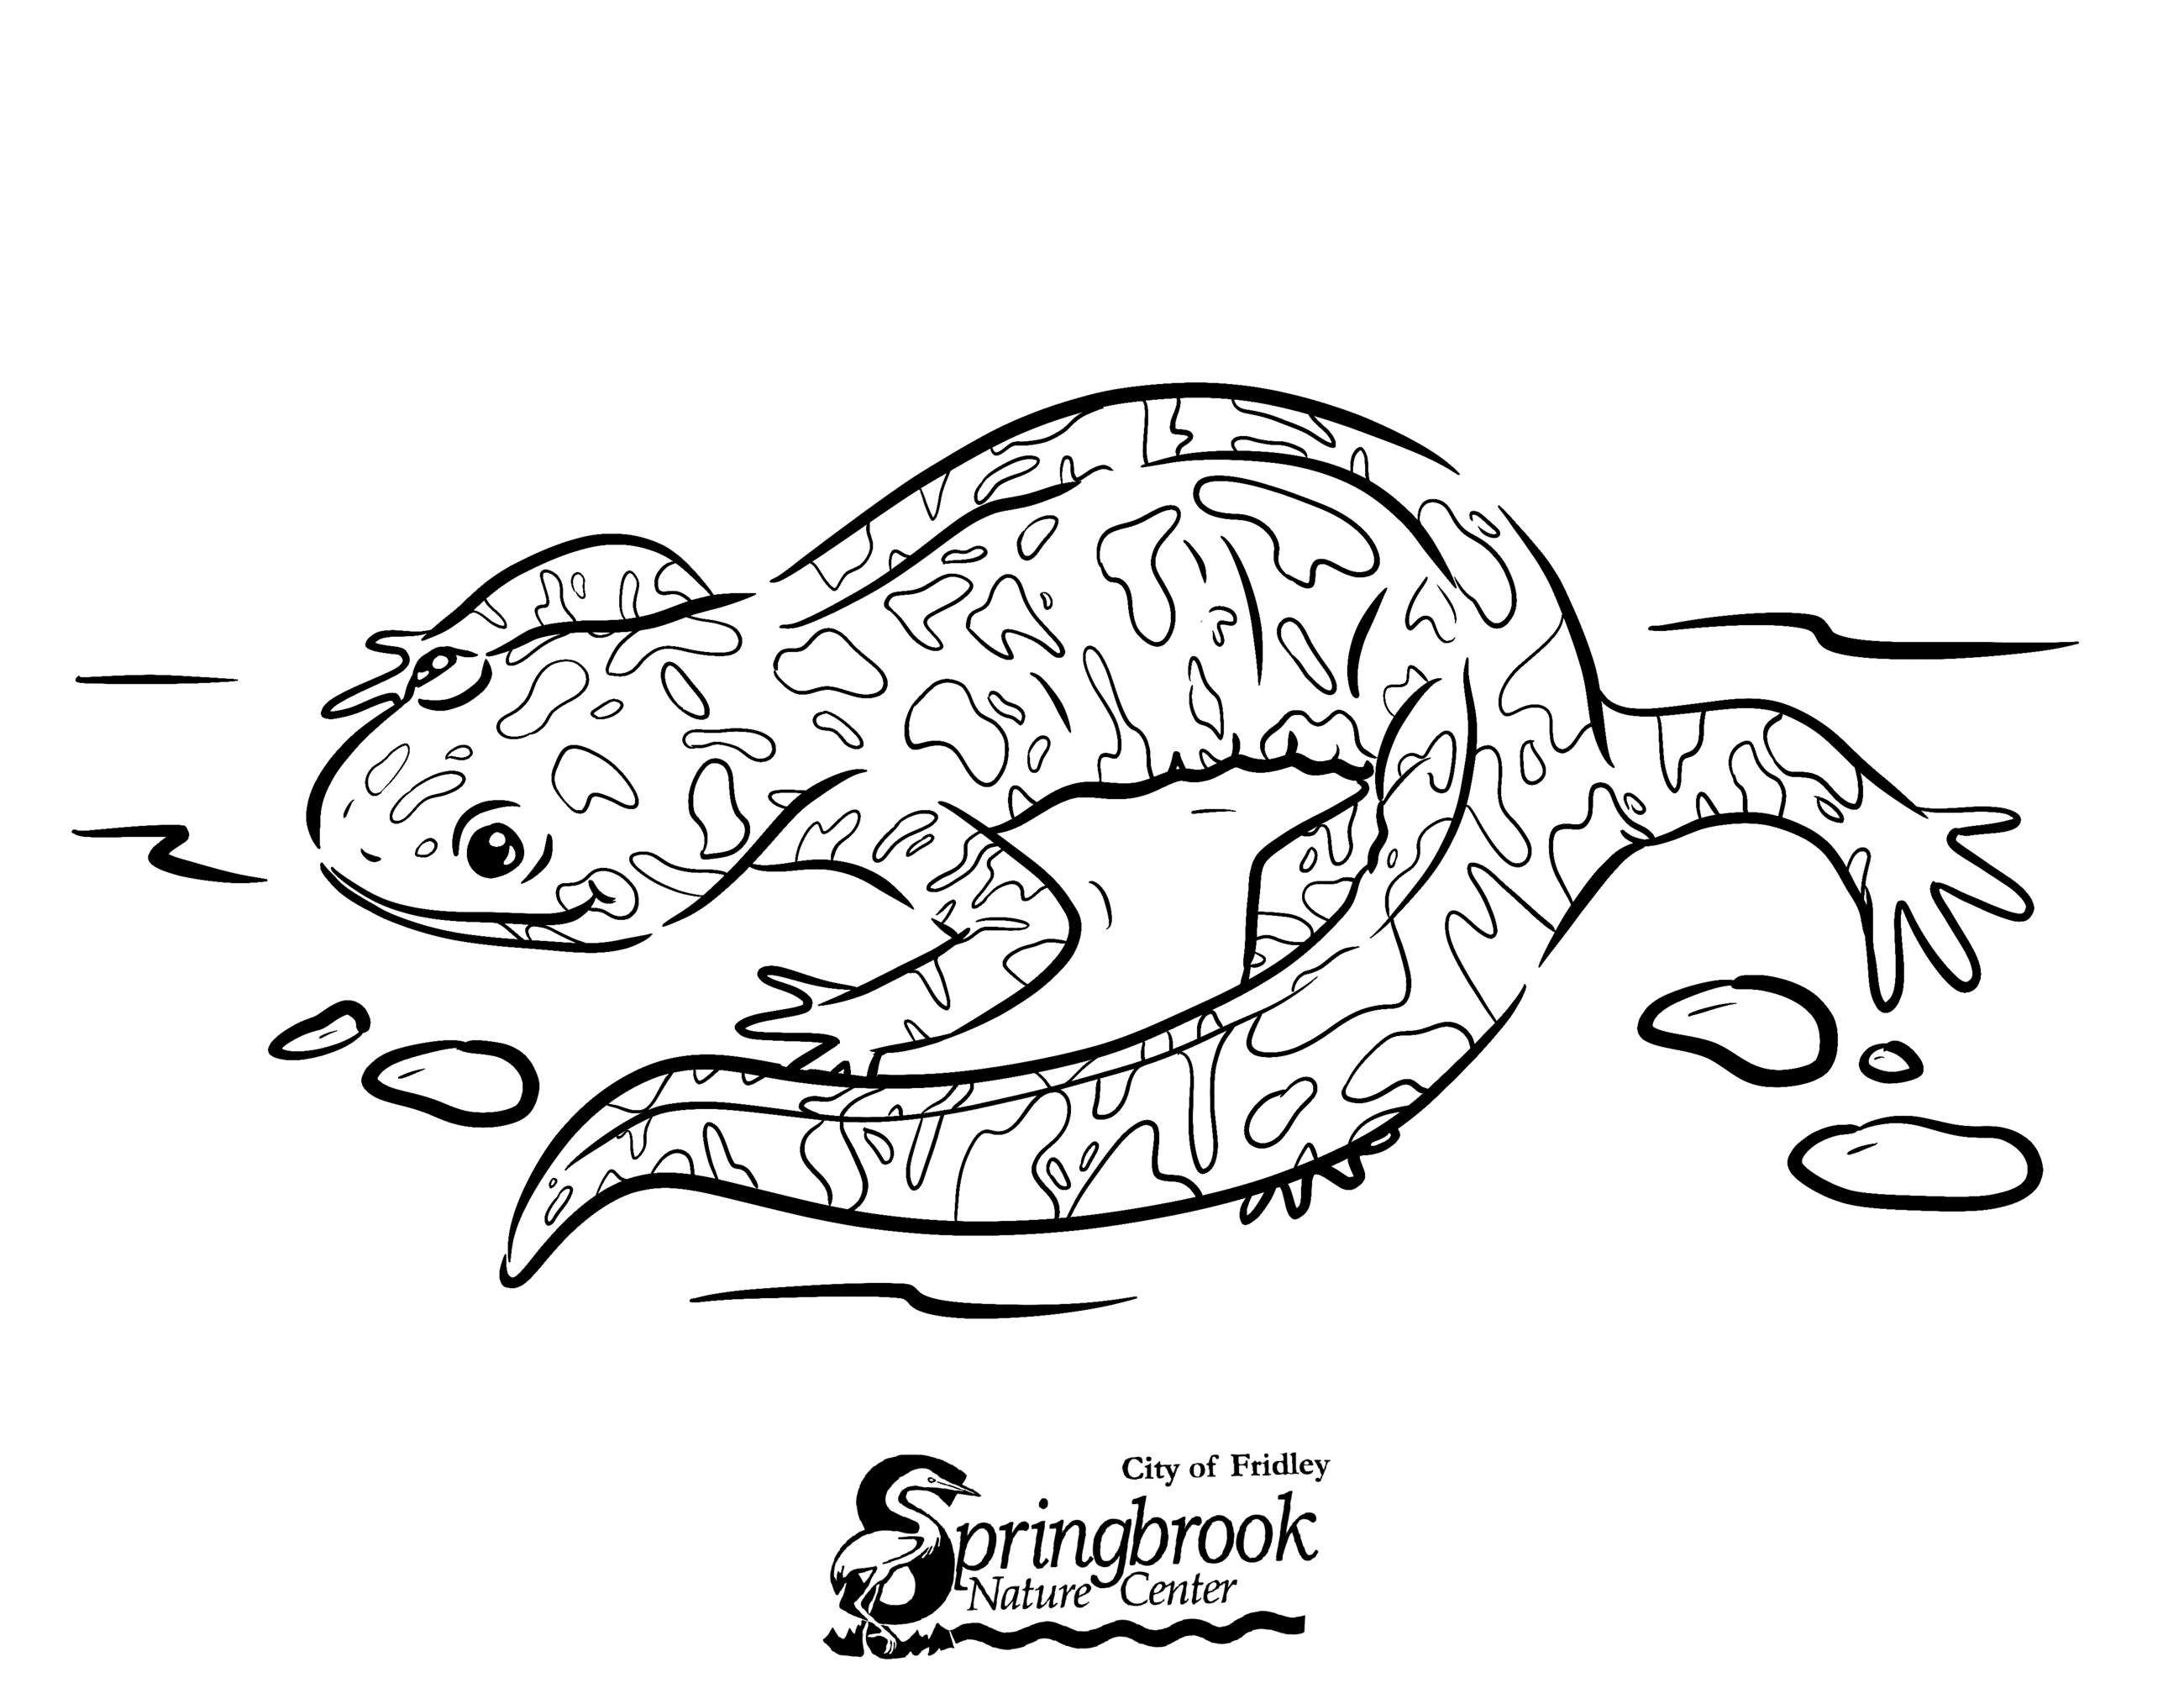 Salamander Coloring Page Opens in new window